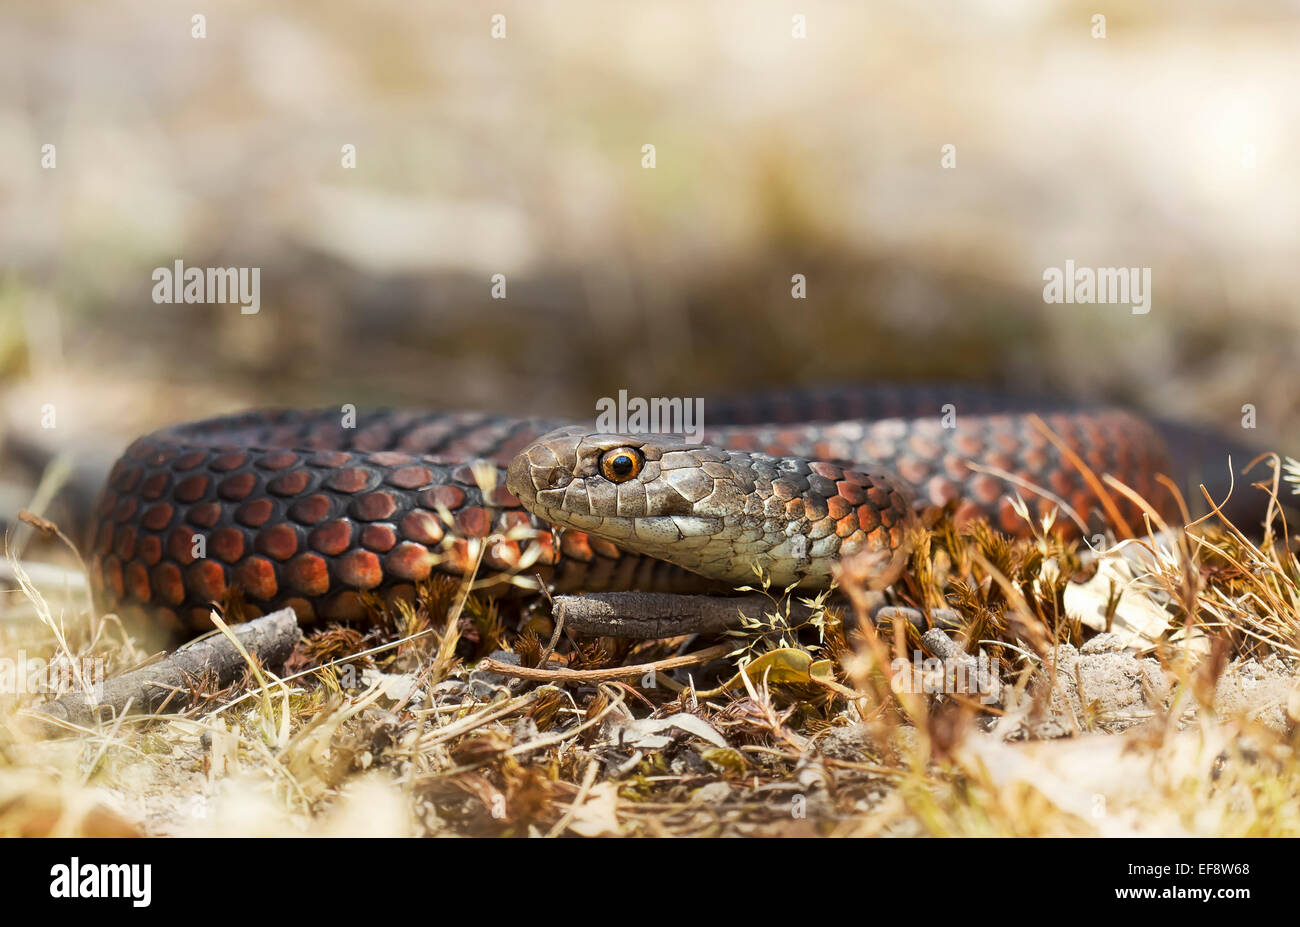 Australia, Lowland copperhead crawling in withered grass - Stock Image